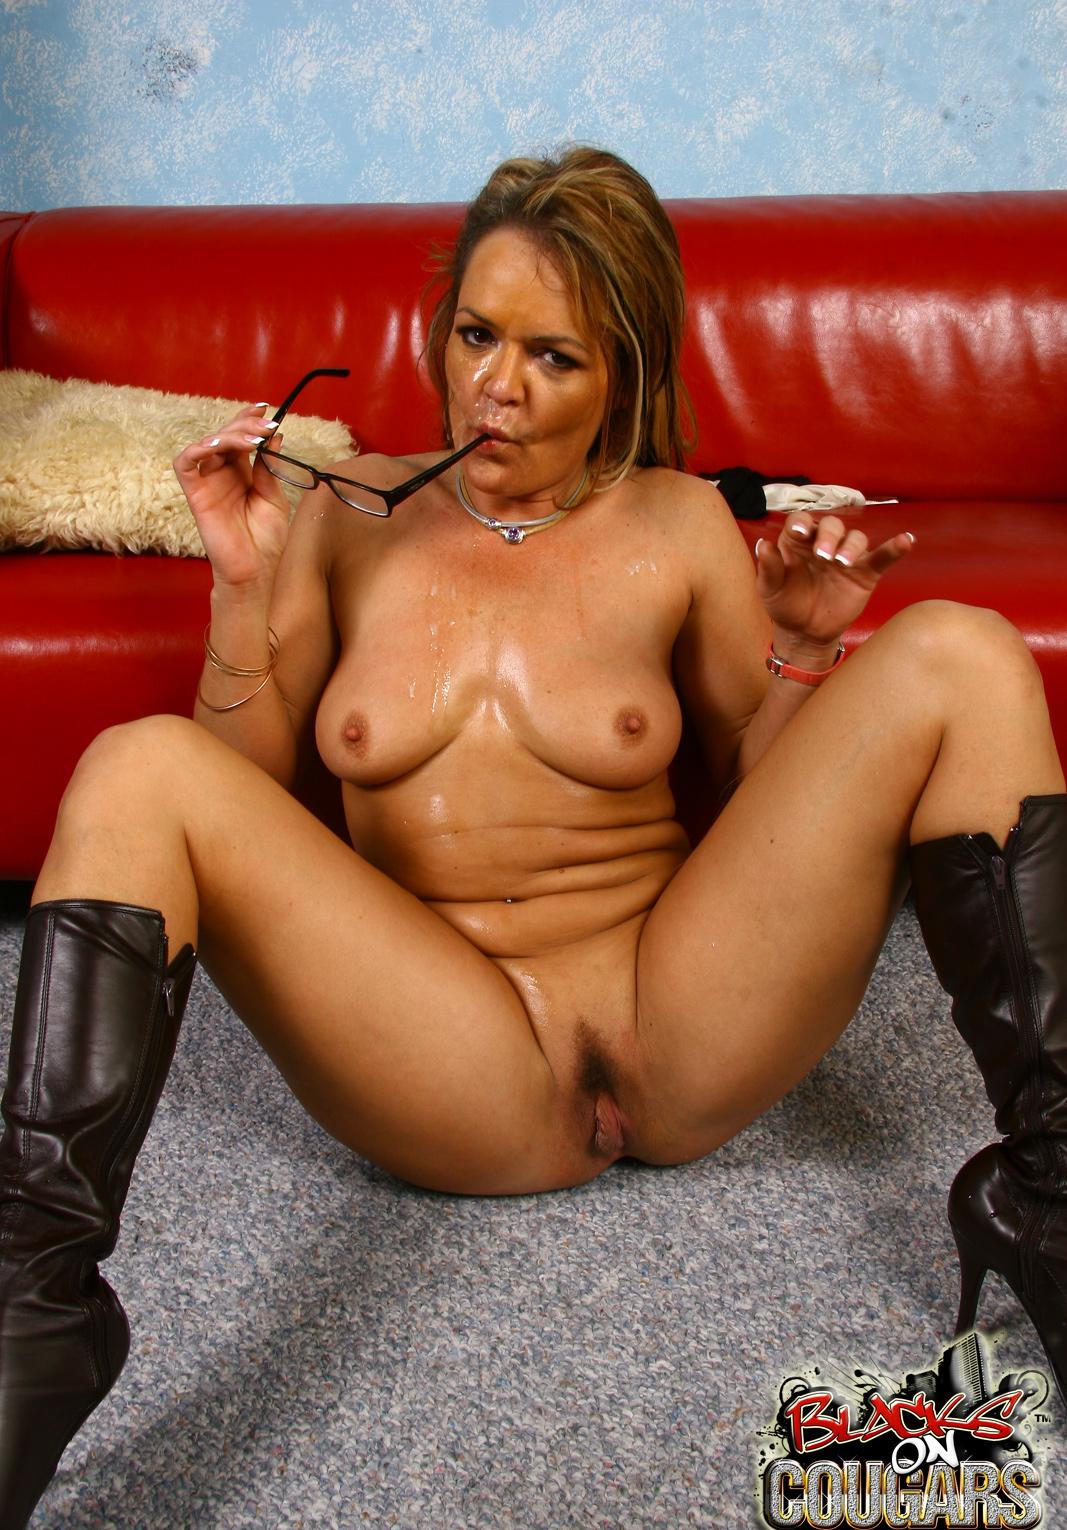 beautyful granny Is addicted curious granny is covered with black cum